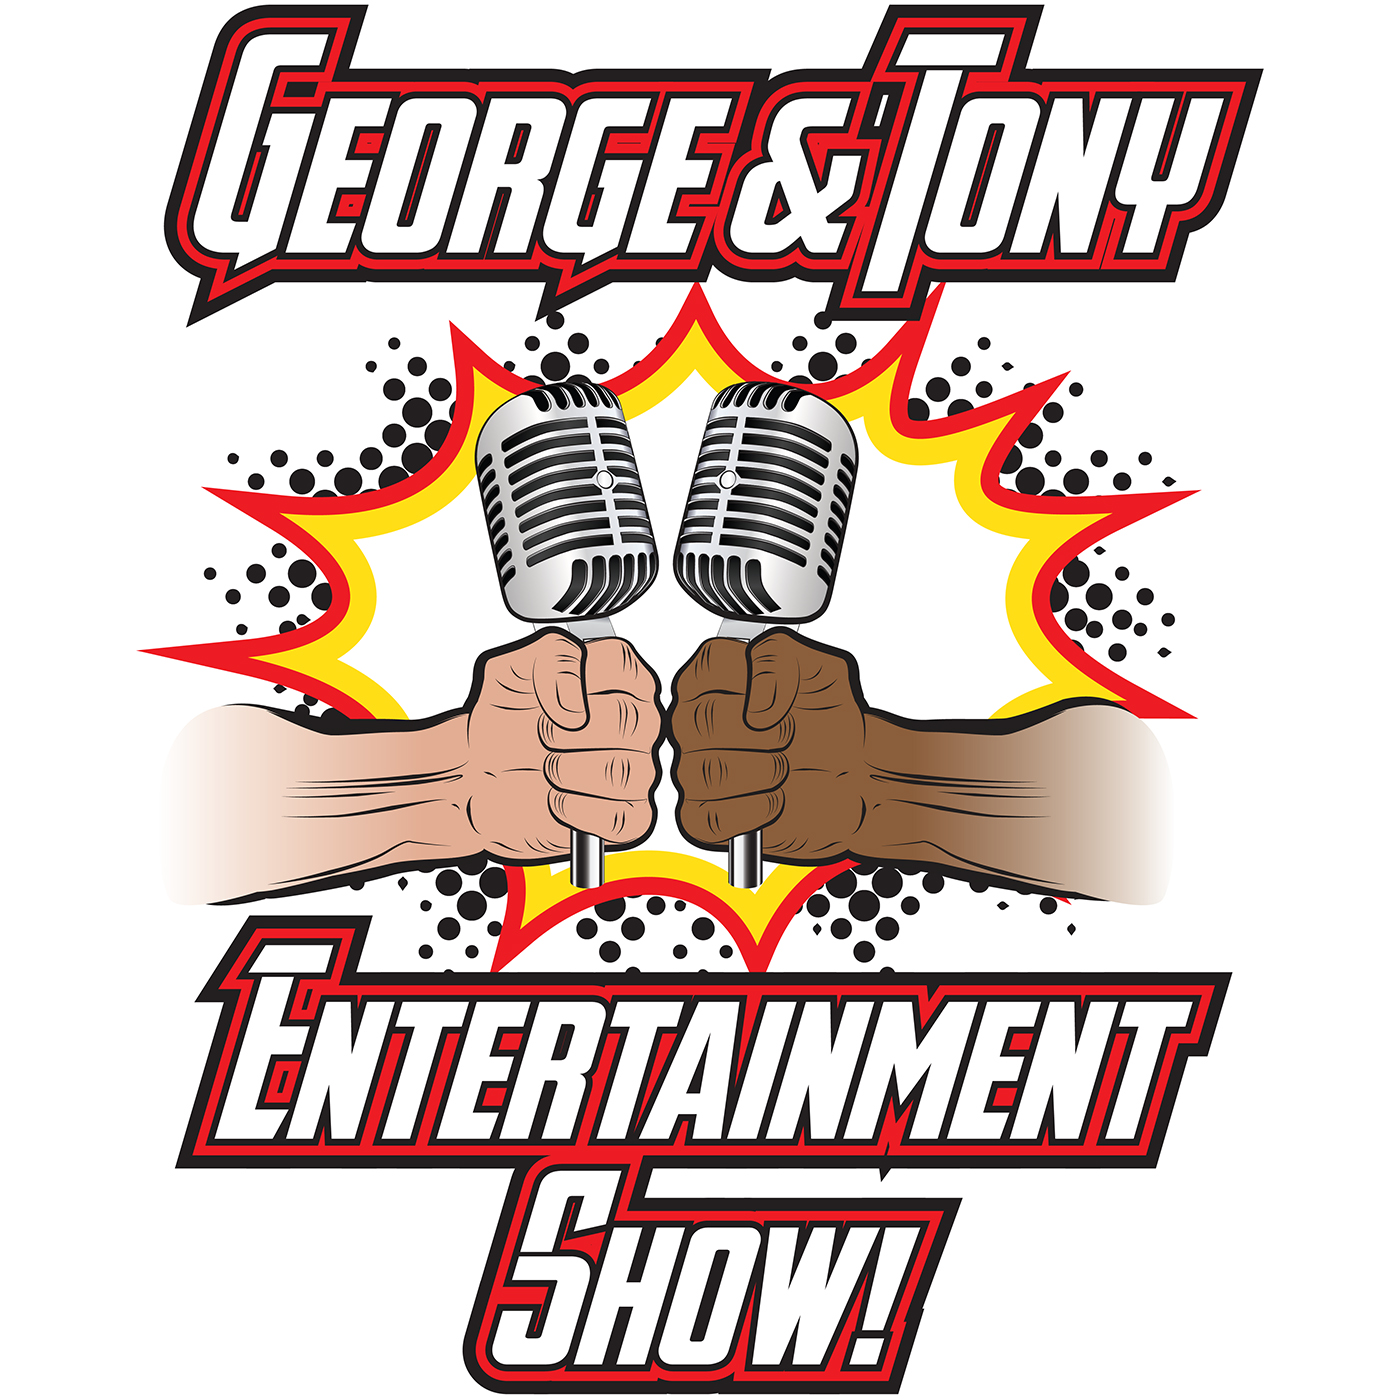 George and Tony Entertainment Show #56